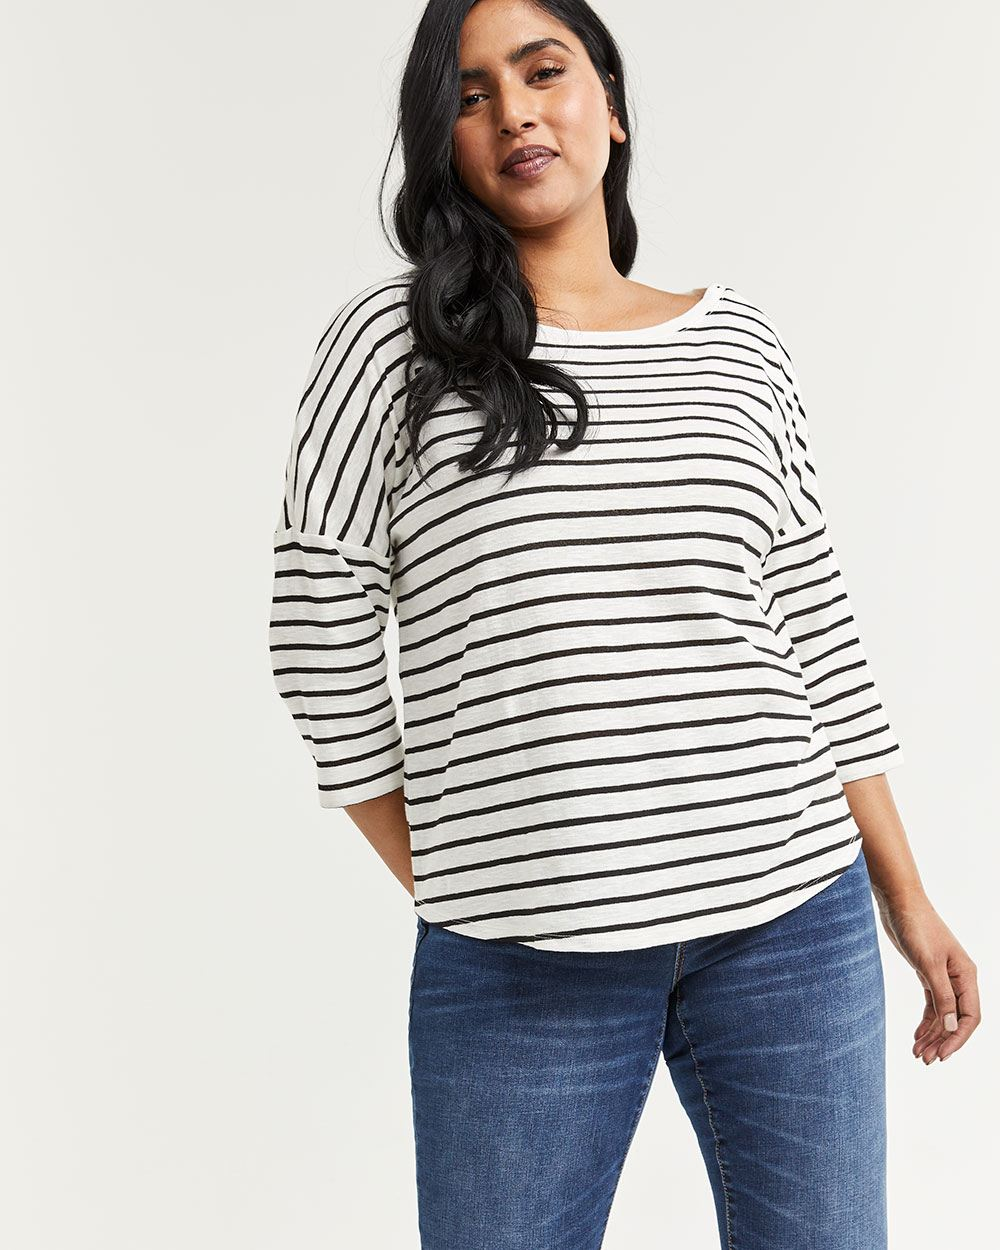 3/4 Sleeve Striped Tee with Buttons at Shoulders